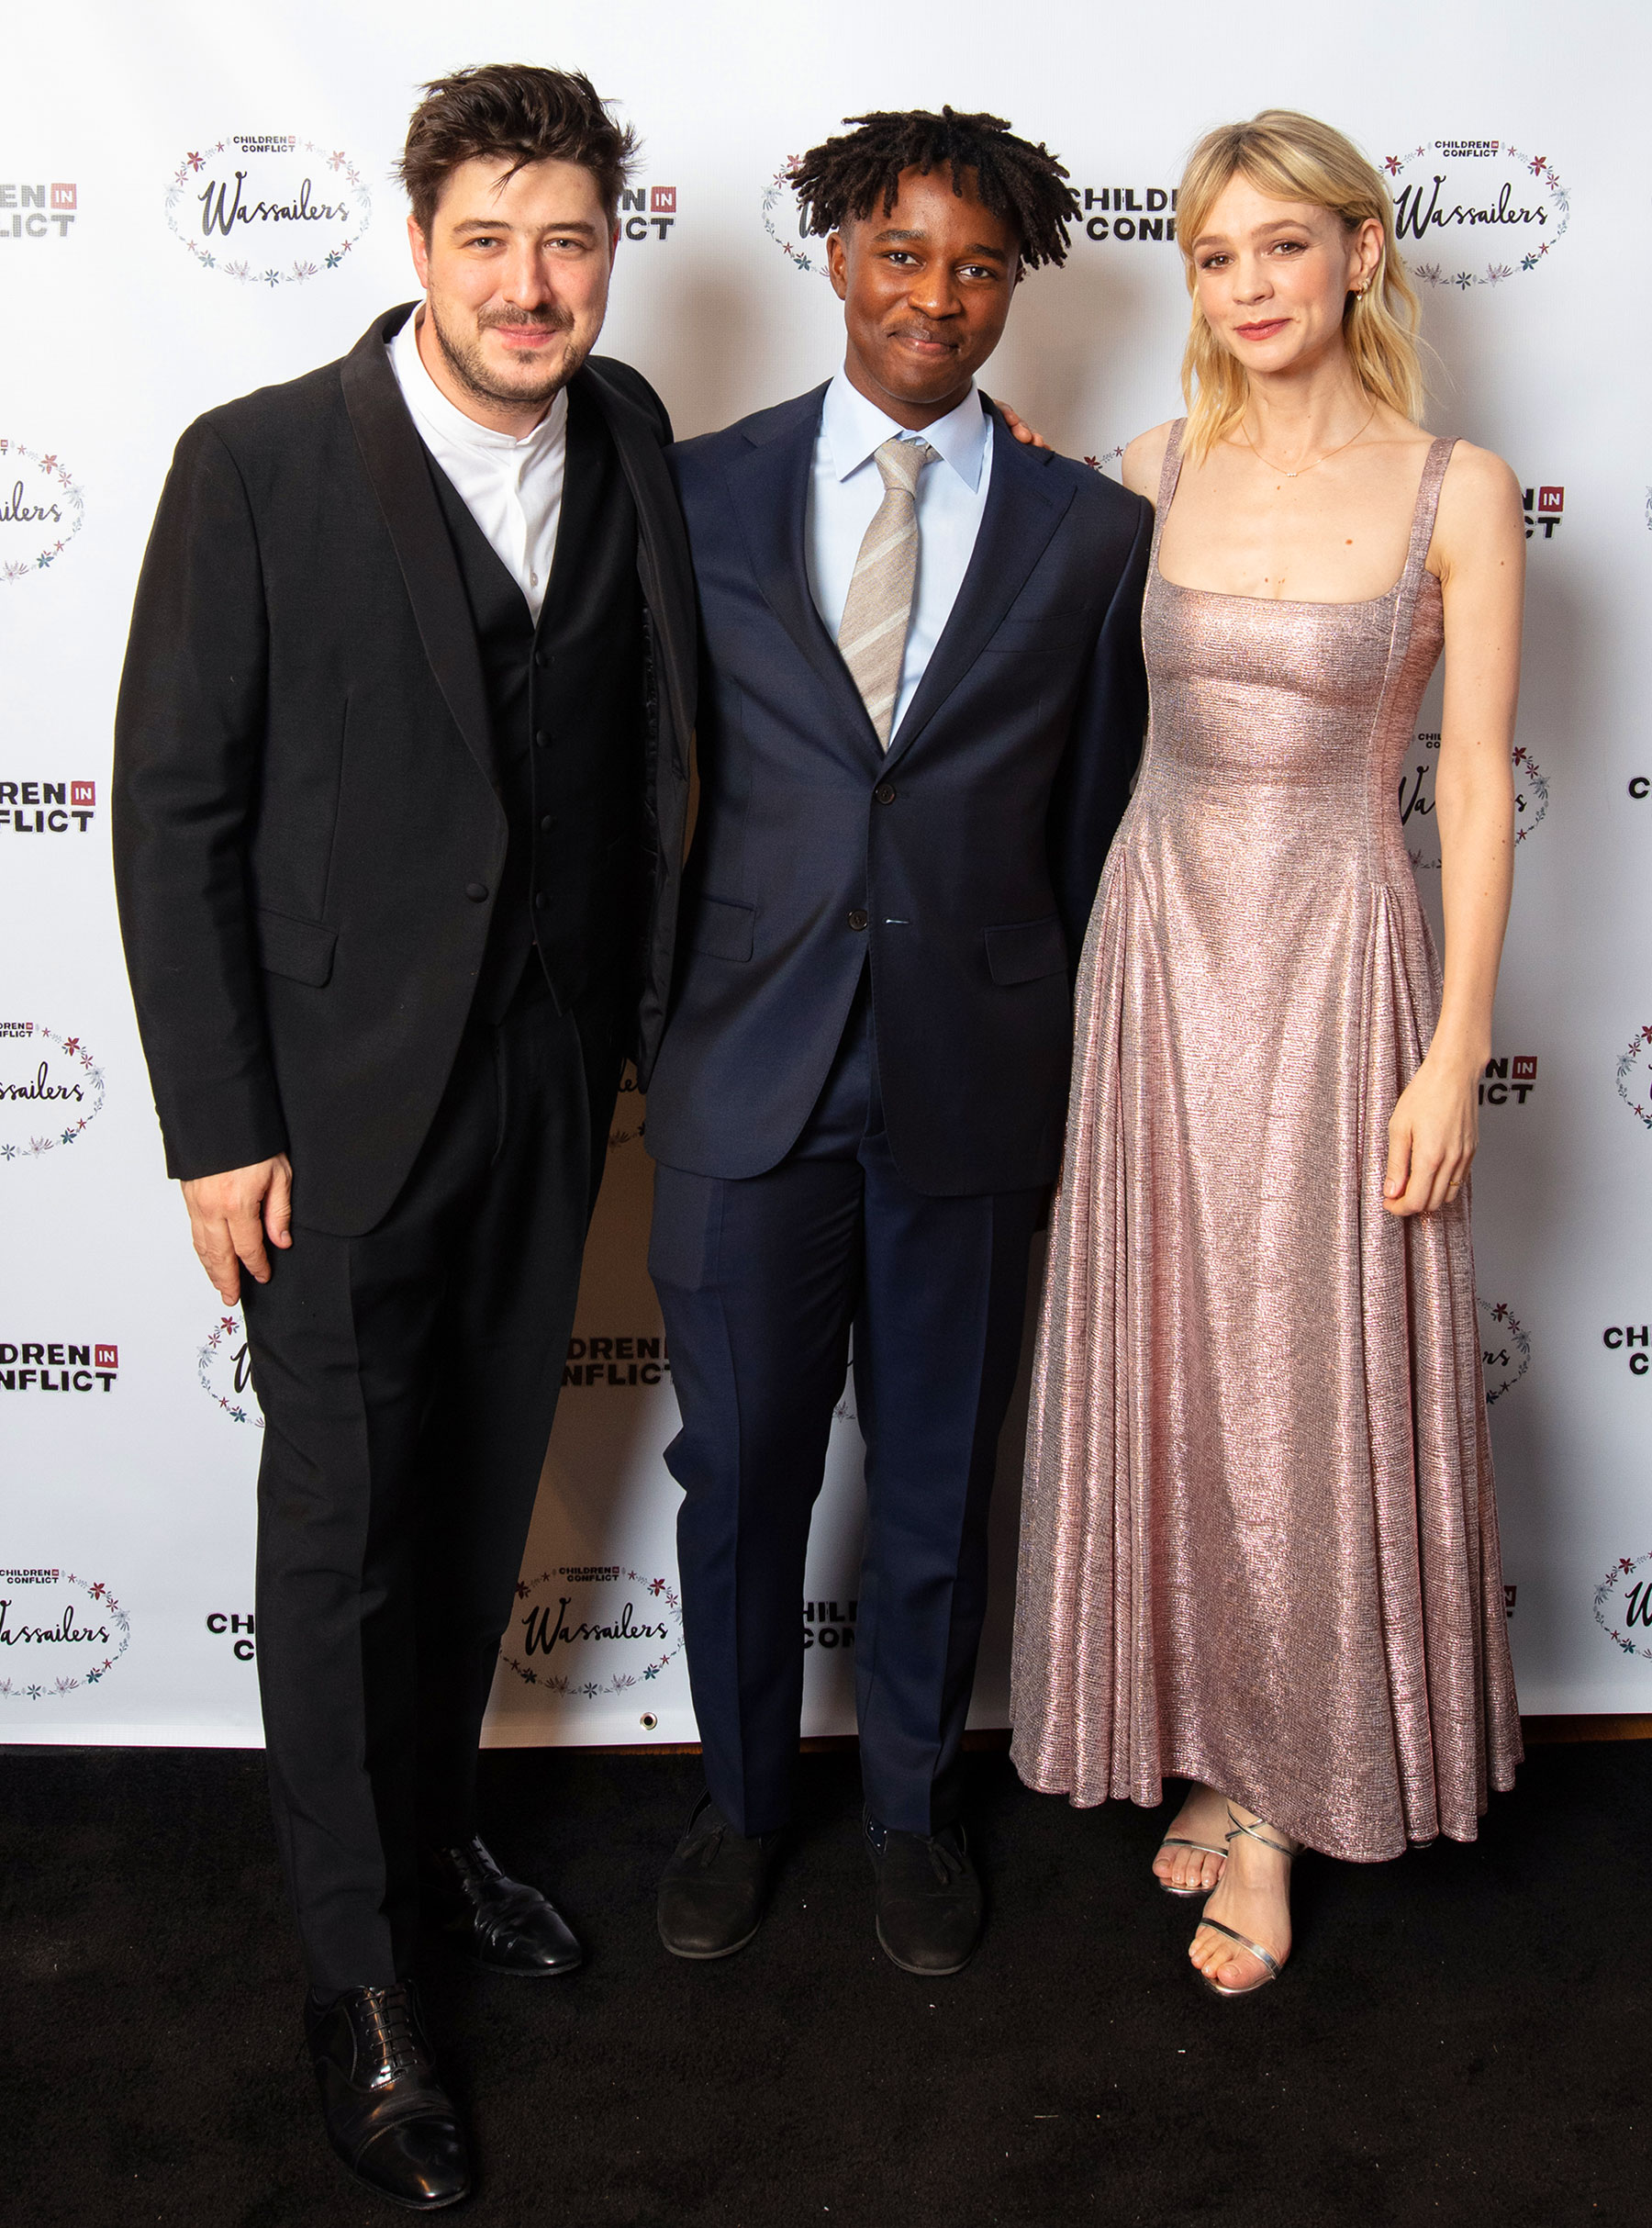 Carey Mulligan and Marcus Mumford Team Up with Child Refugee to Raise Awareness for Children in Conflict